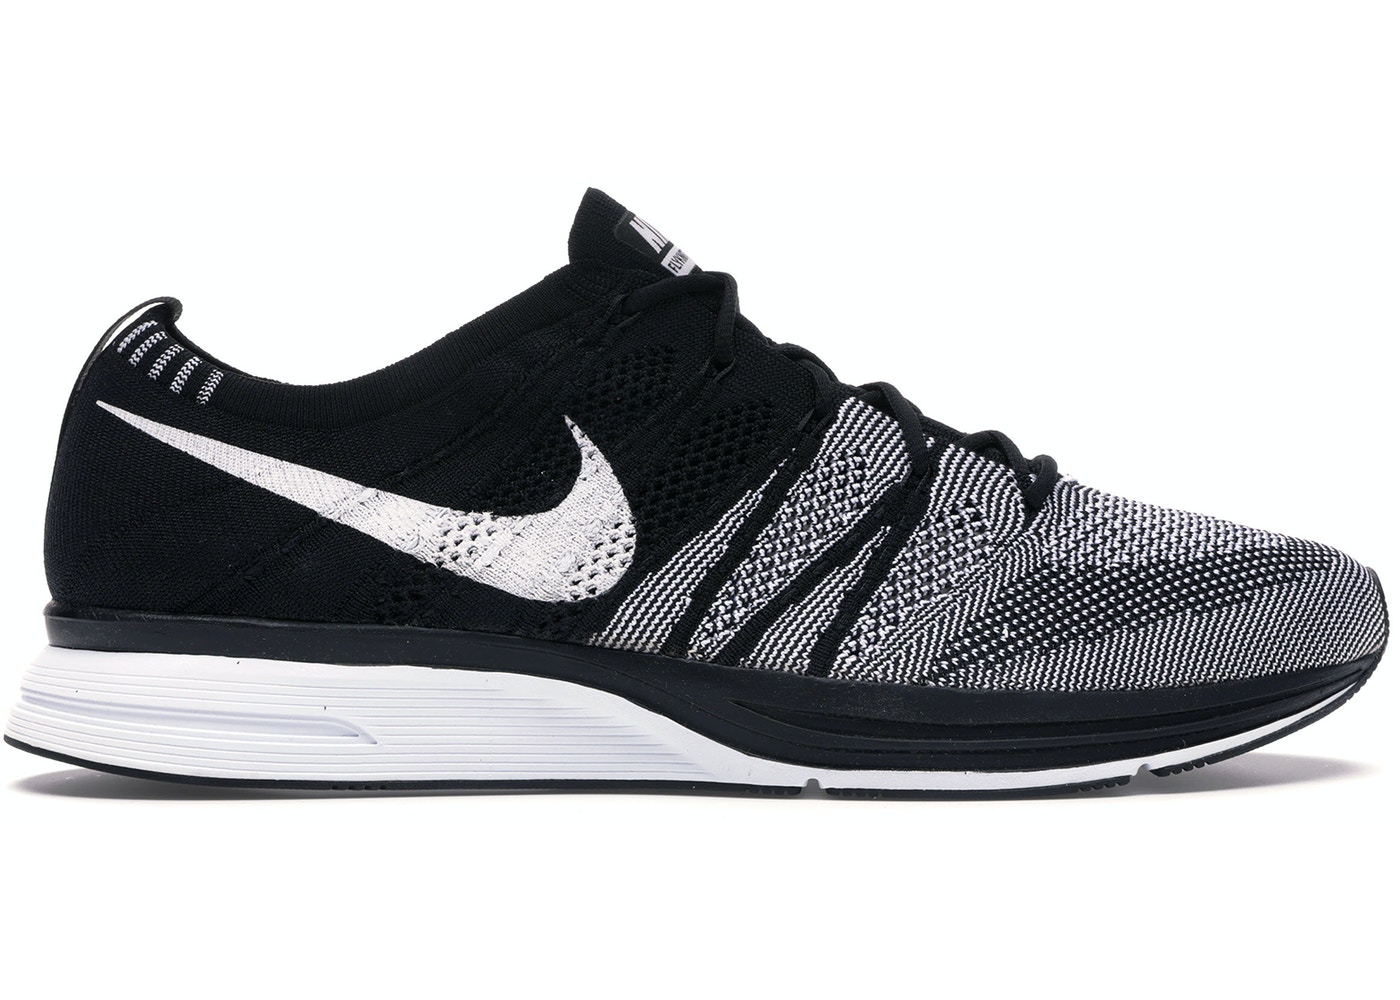 uk availability 06603 f1e85 Flyknit Trainer Oreo - AH8396-005